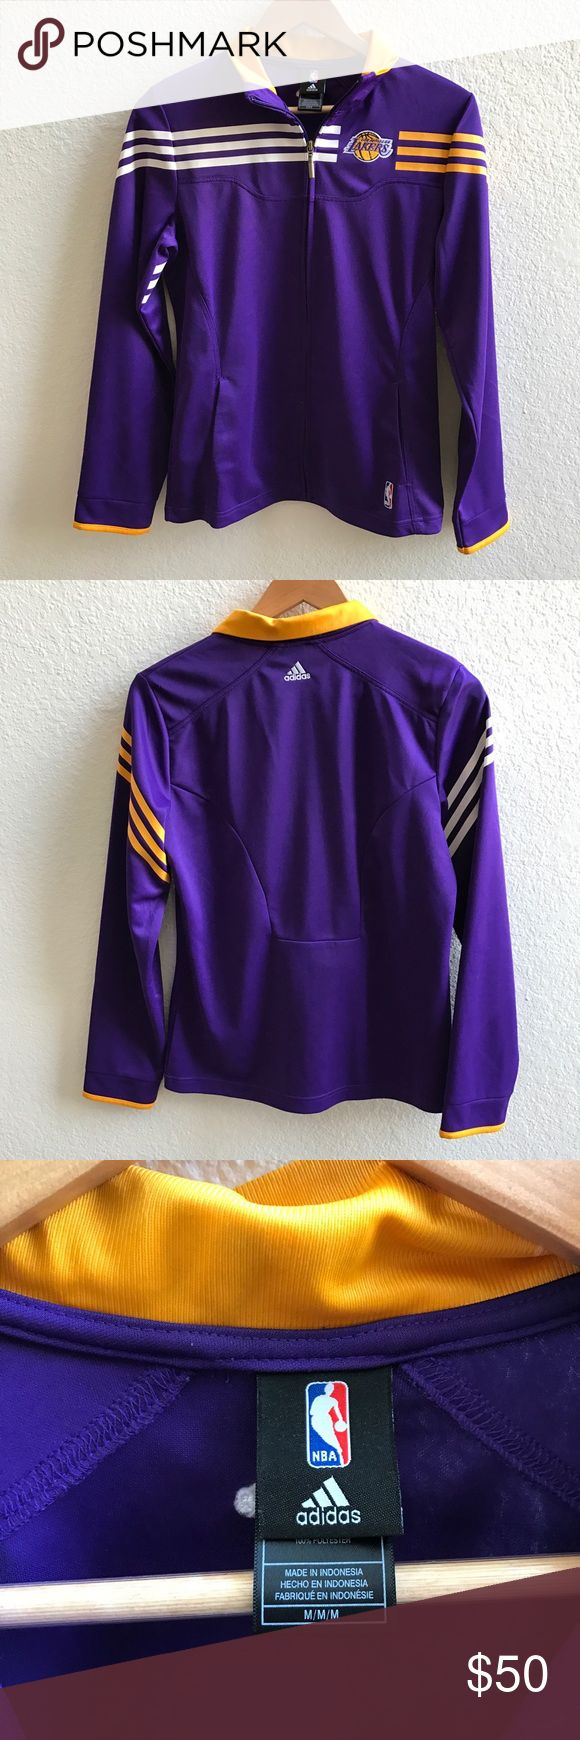 Adidas Los Angeles Lakers Track Jacket Size M Official NBA Lakers Los Angeles track jacket. Worn once, excellent condition. 100% polyester. Adidas Jackets & Coats